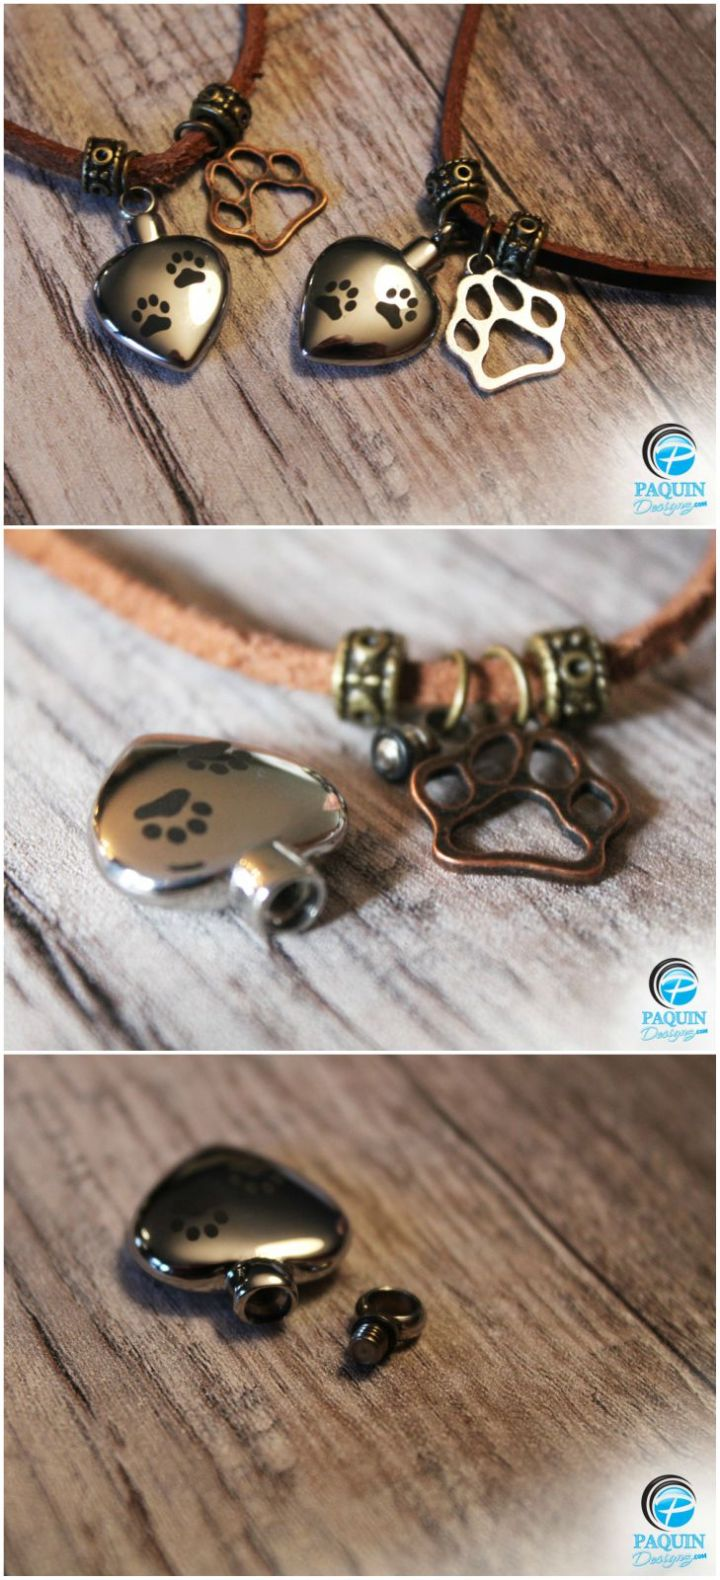 9 Pet Memorial Gifts - Pet cremation jewelry such as cremation necklaces hold your pet's ashes in a beautiful pendant.